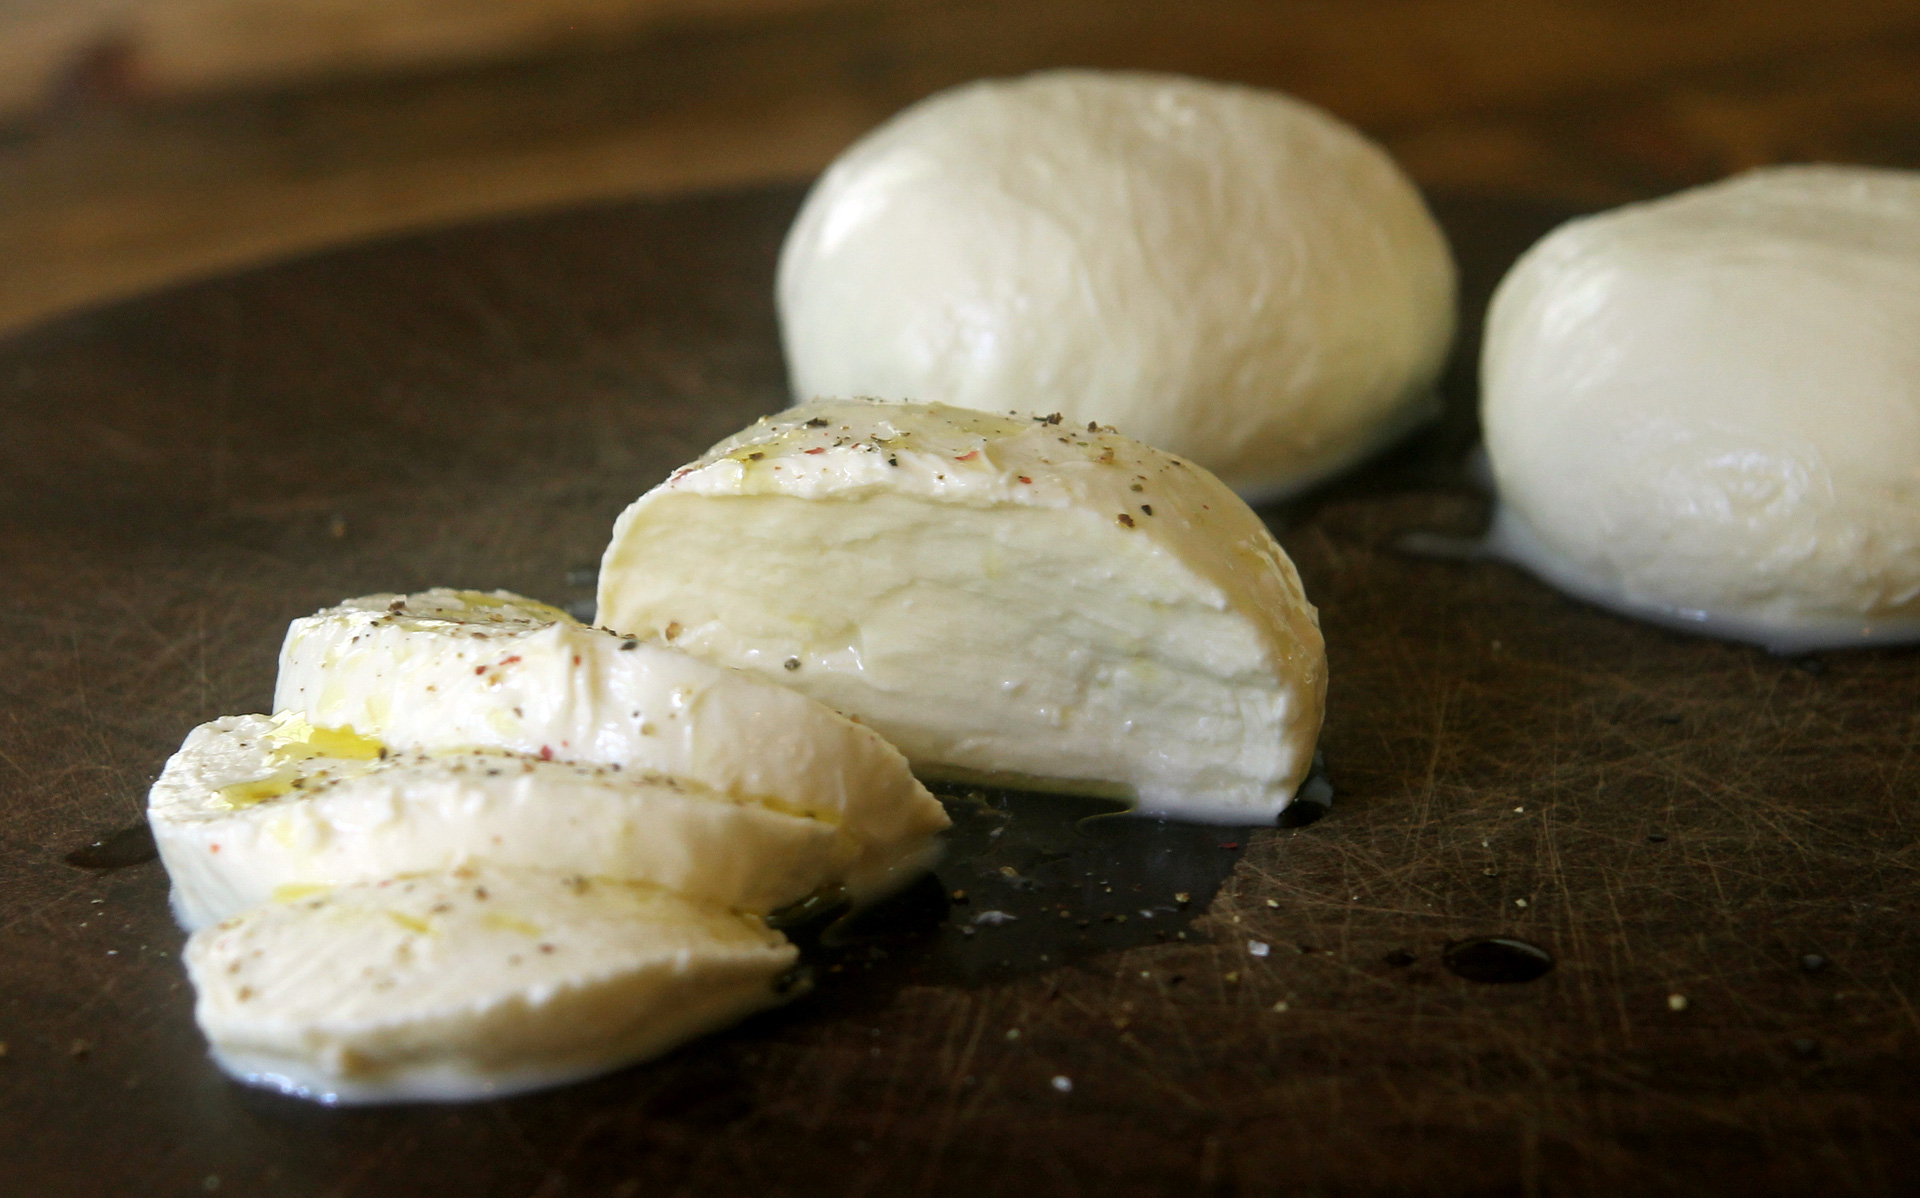 Homemade fresh mozzarella with olive oil and freshly ground pepper